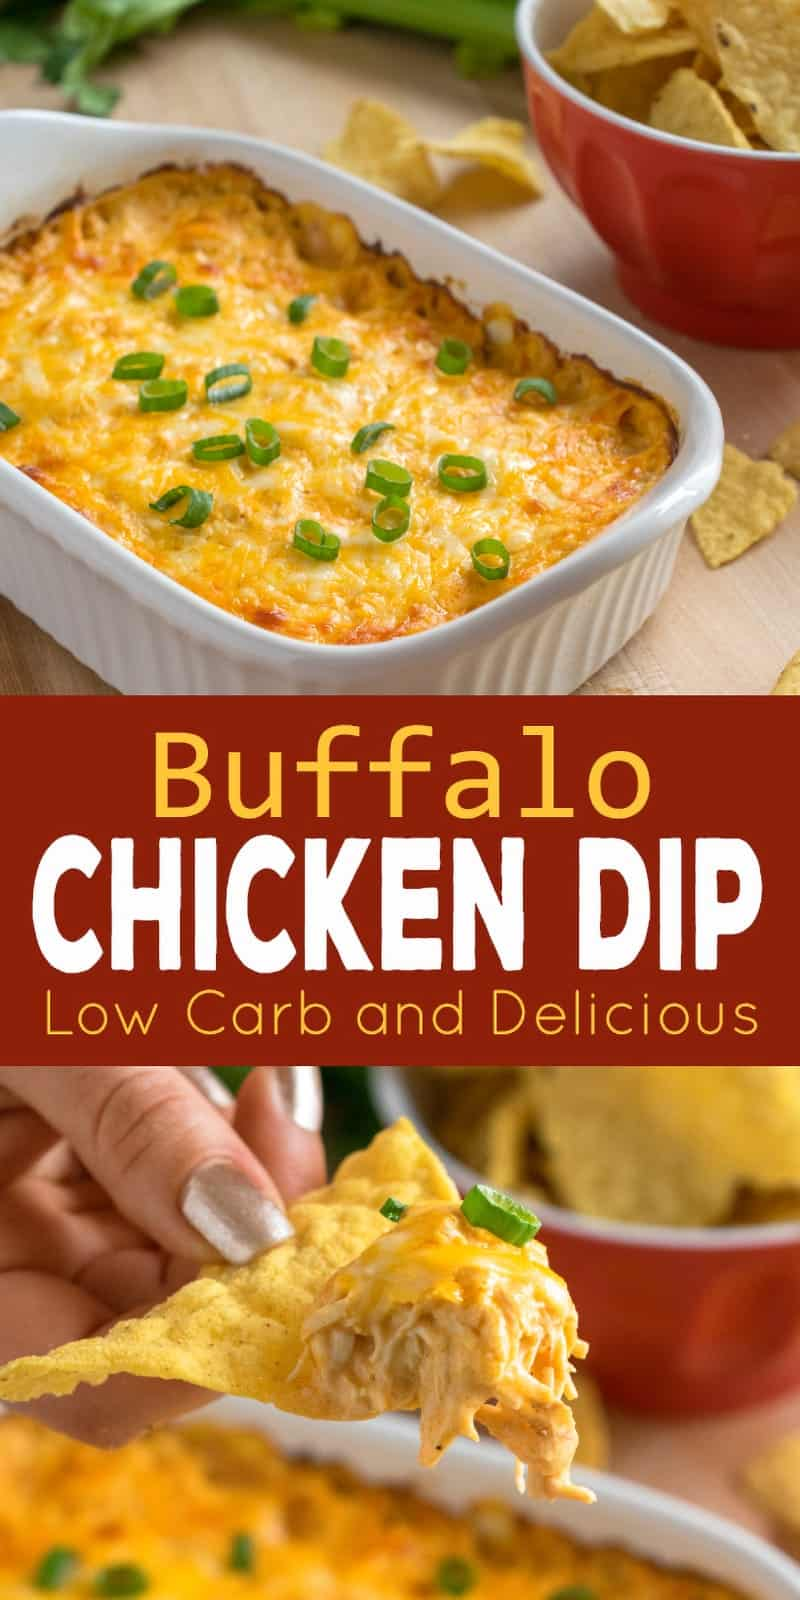 Creamy hot buffalo chicken dip baked with melty cheese, garnished with chives, served with tortilla chips